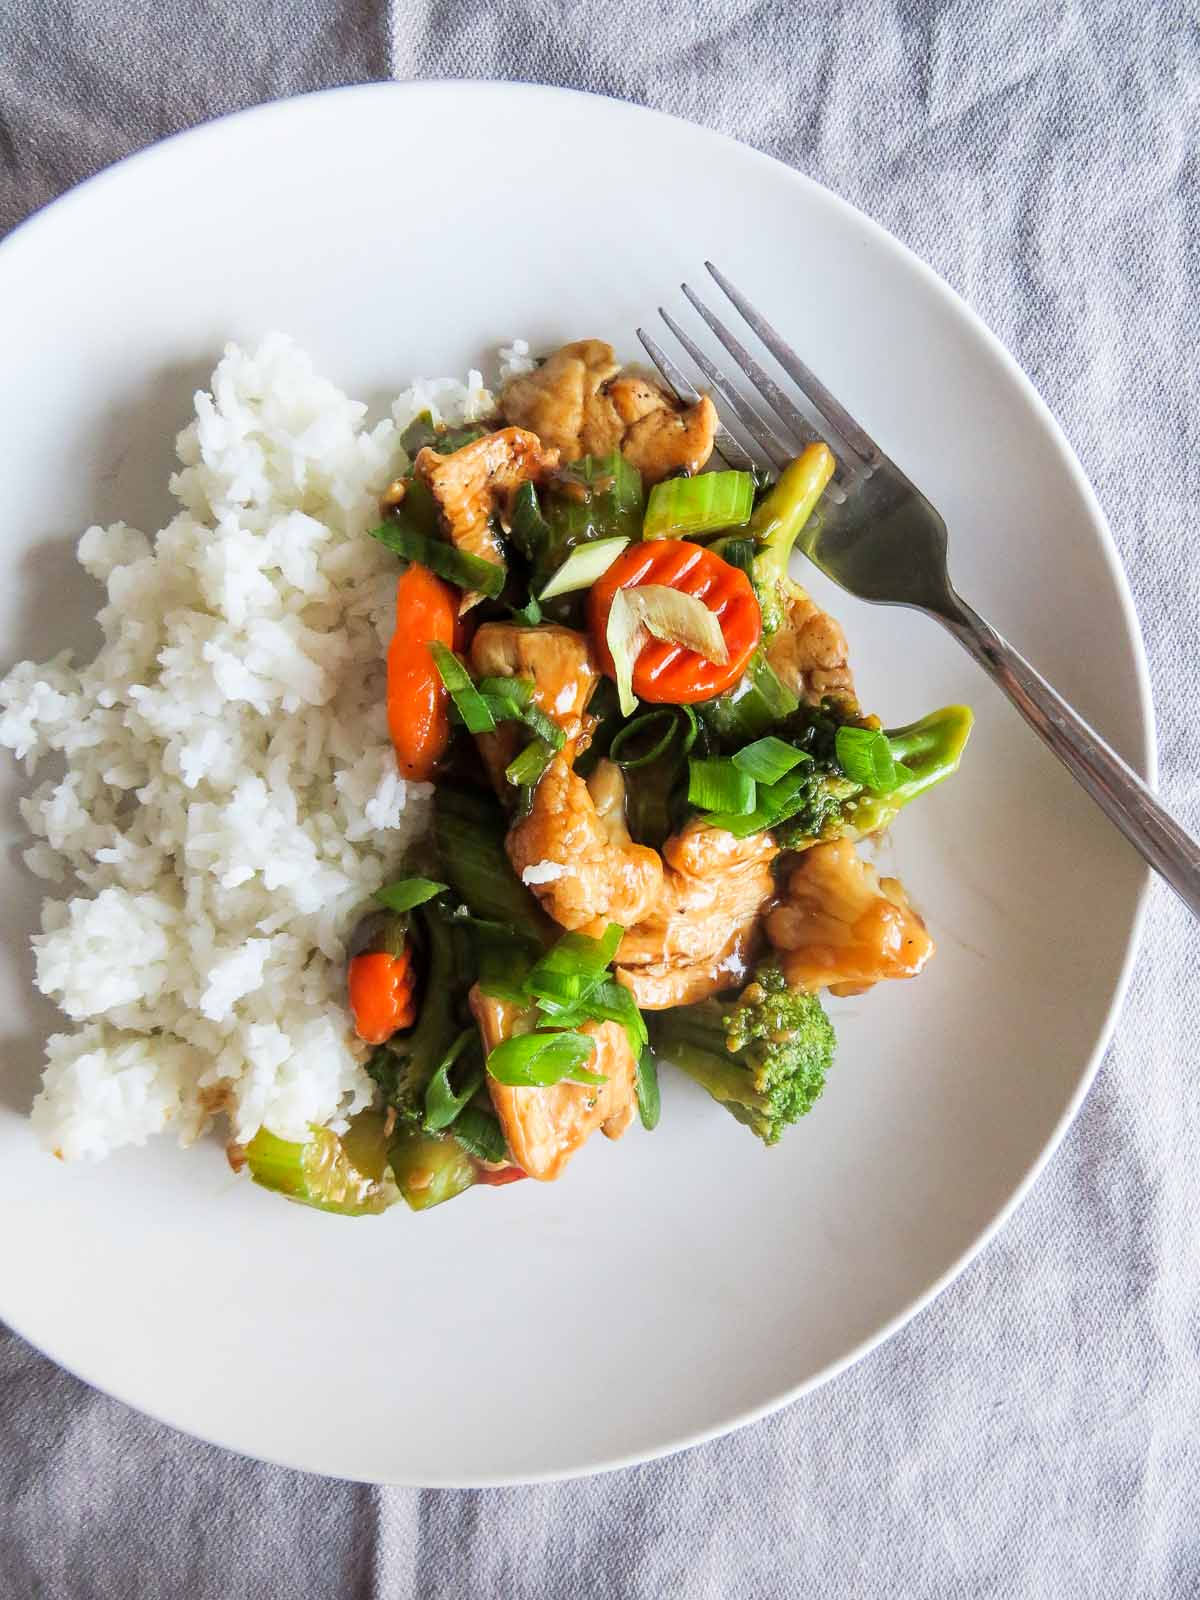 Kitchen Sink Chinese Stir Fry to the RESCUE! Got fresh and frozen vegetables lying around that you don't know what to do with? This main dish recipe has got your back and is perfect for two, a couple or many!